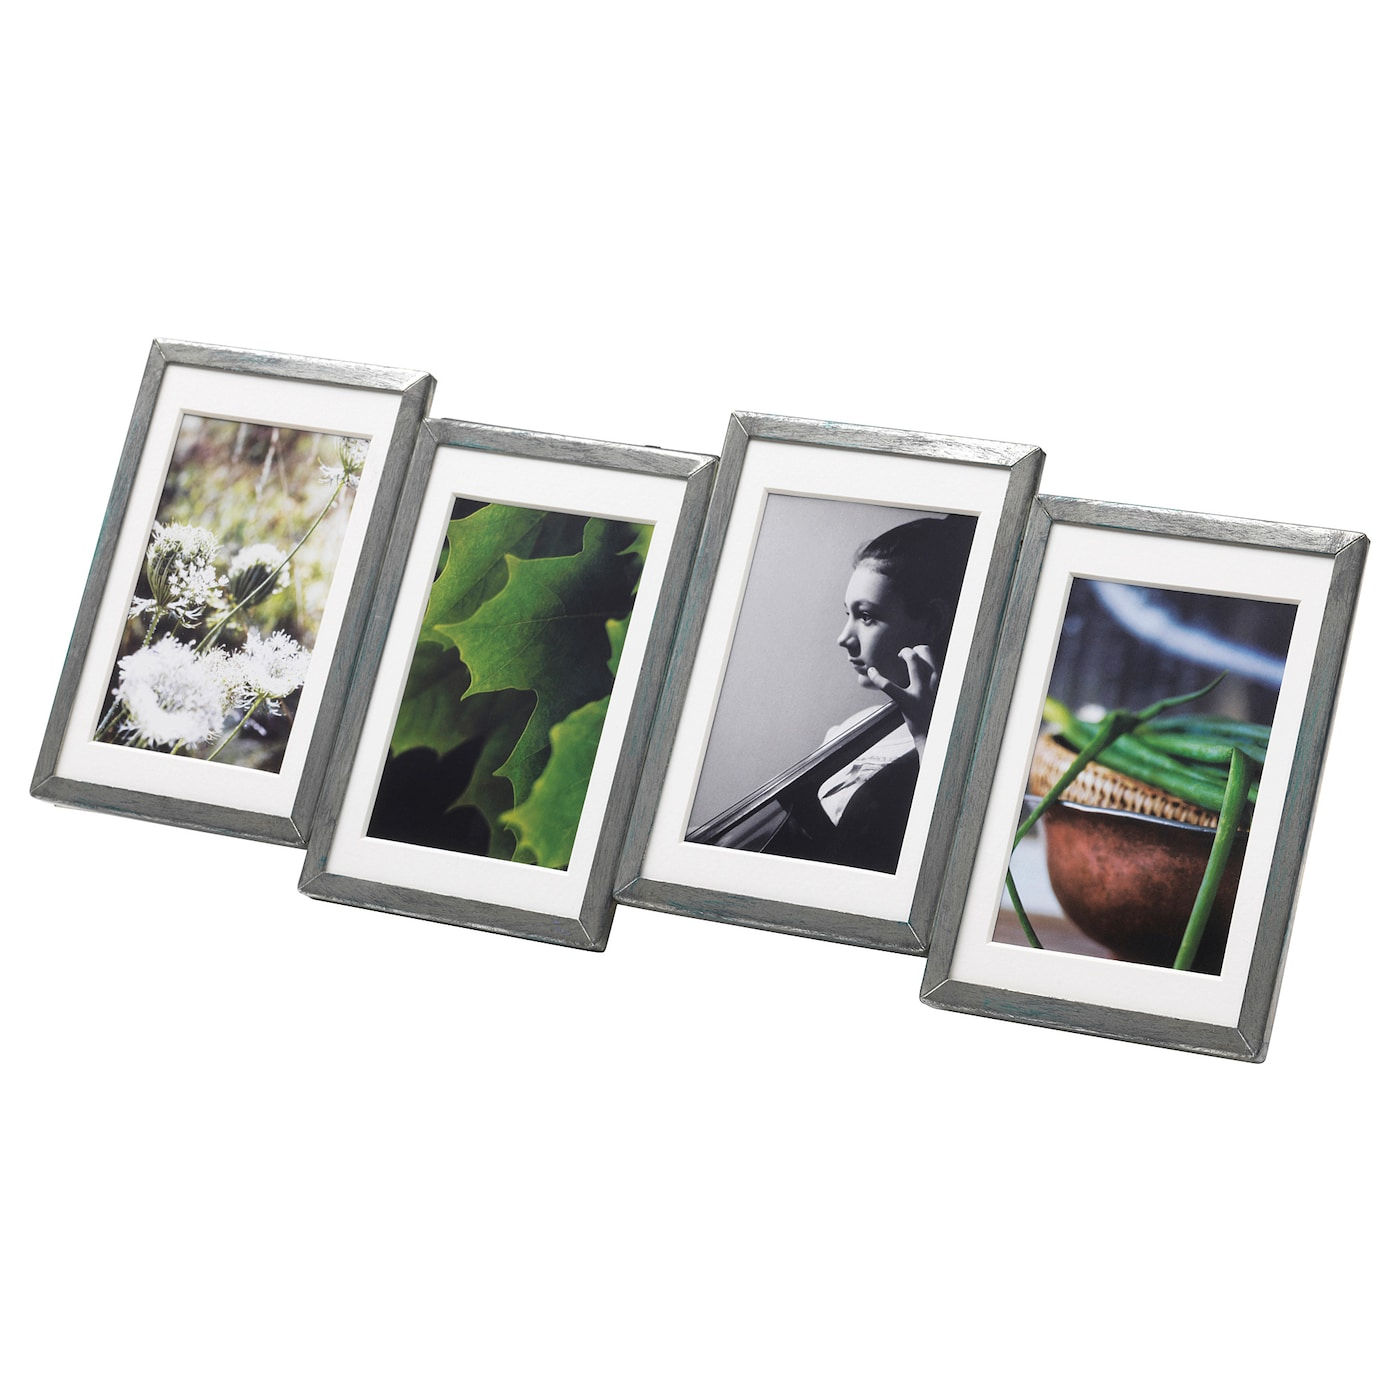 VIARED Collage frame for 4 photos - IKEA